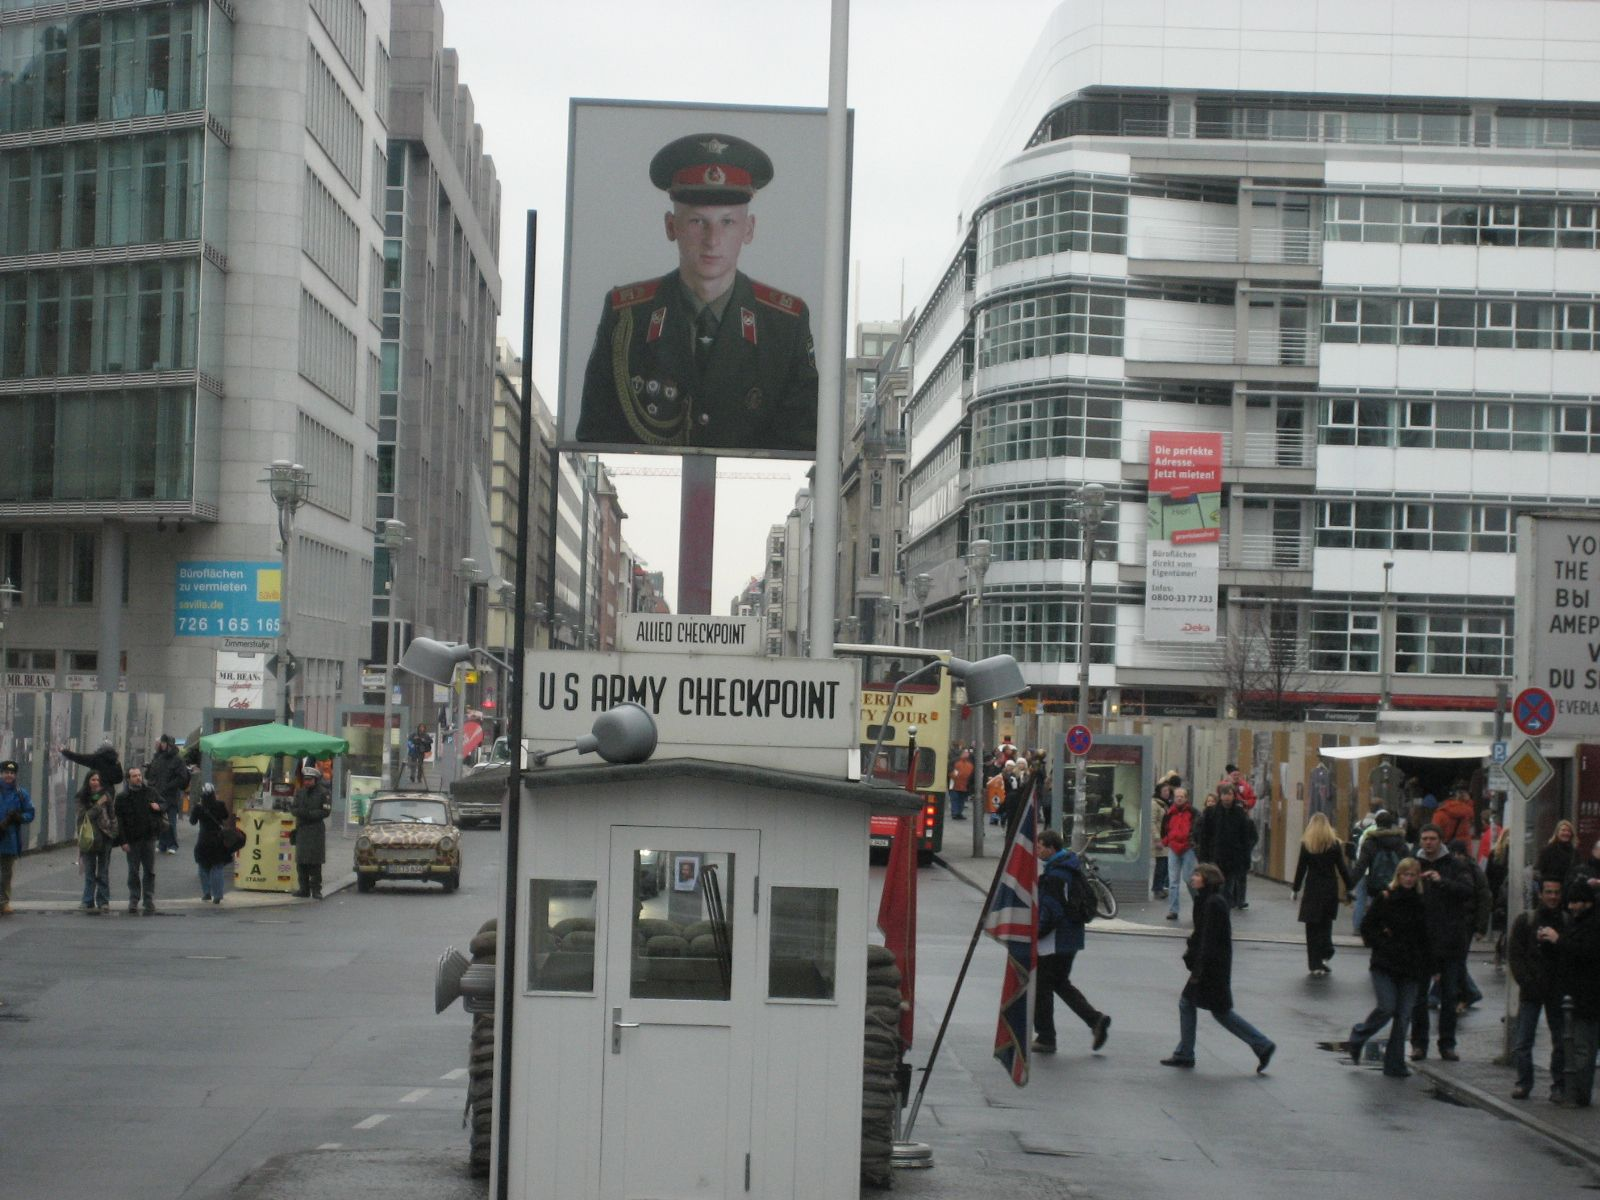 Mauer Museum Haus Am Checkpoint Charlie Checkpoint Charlie Haus Museum